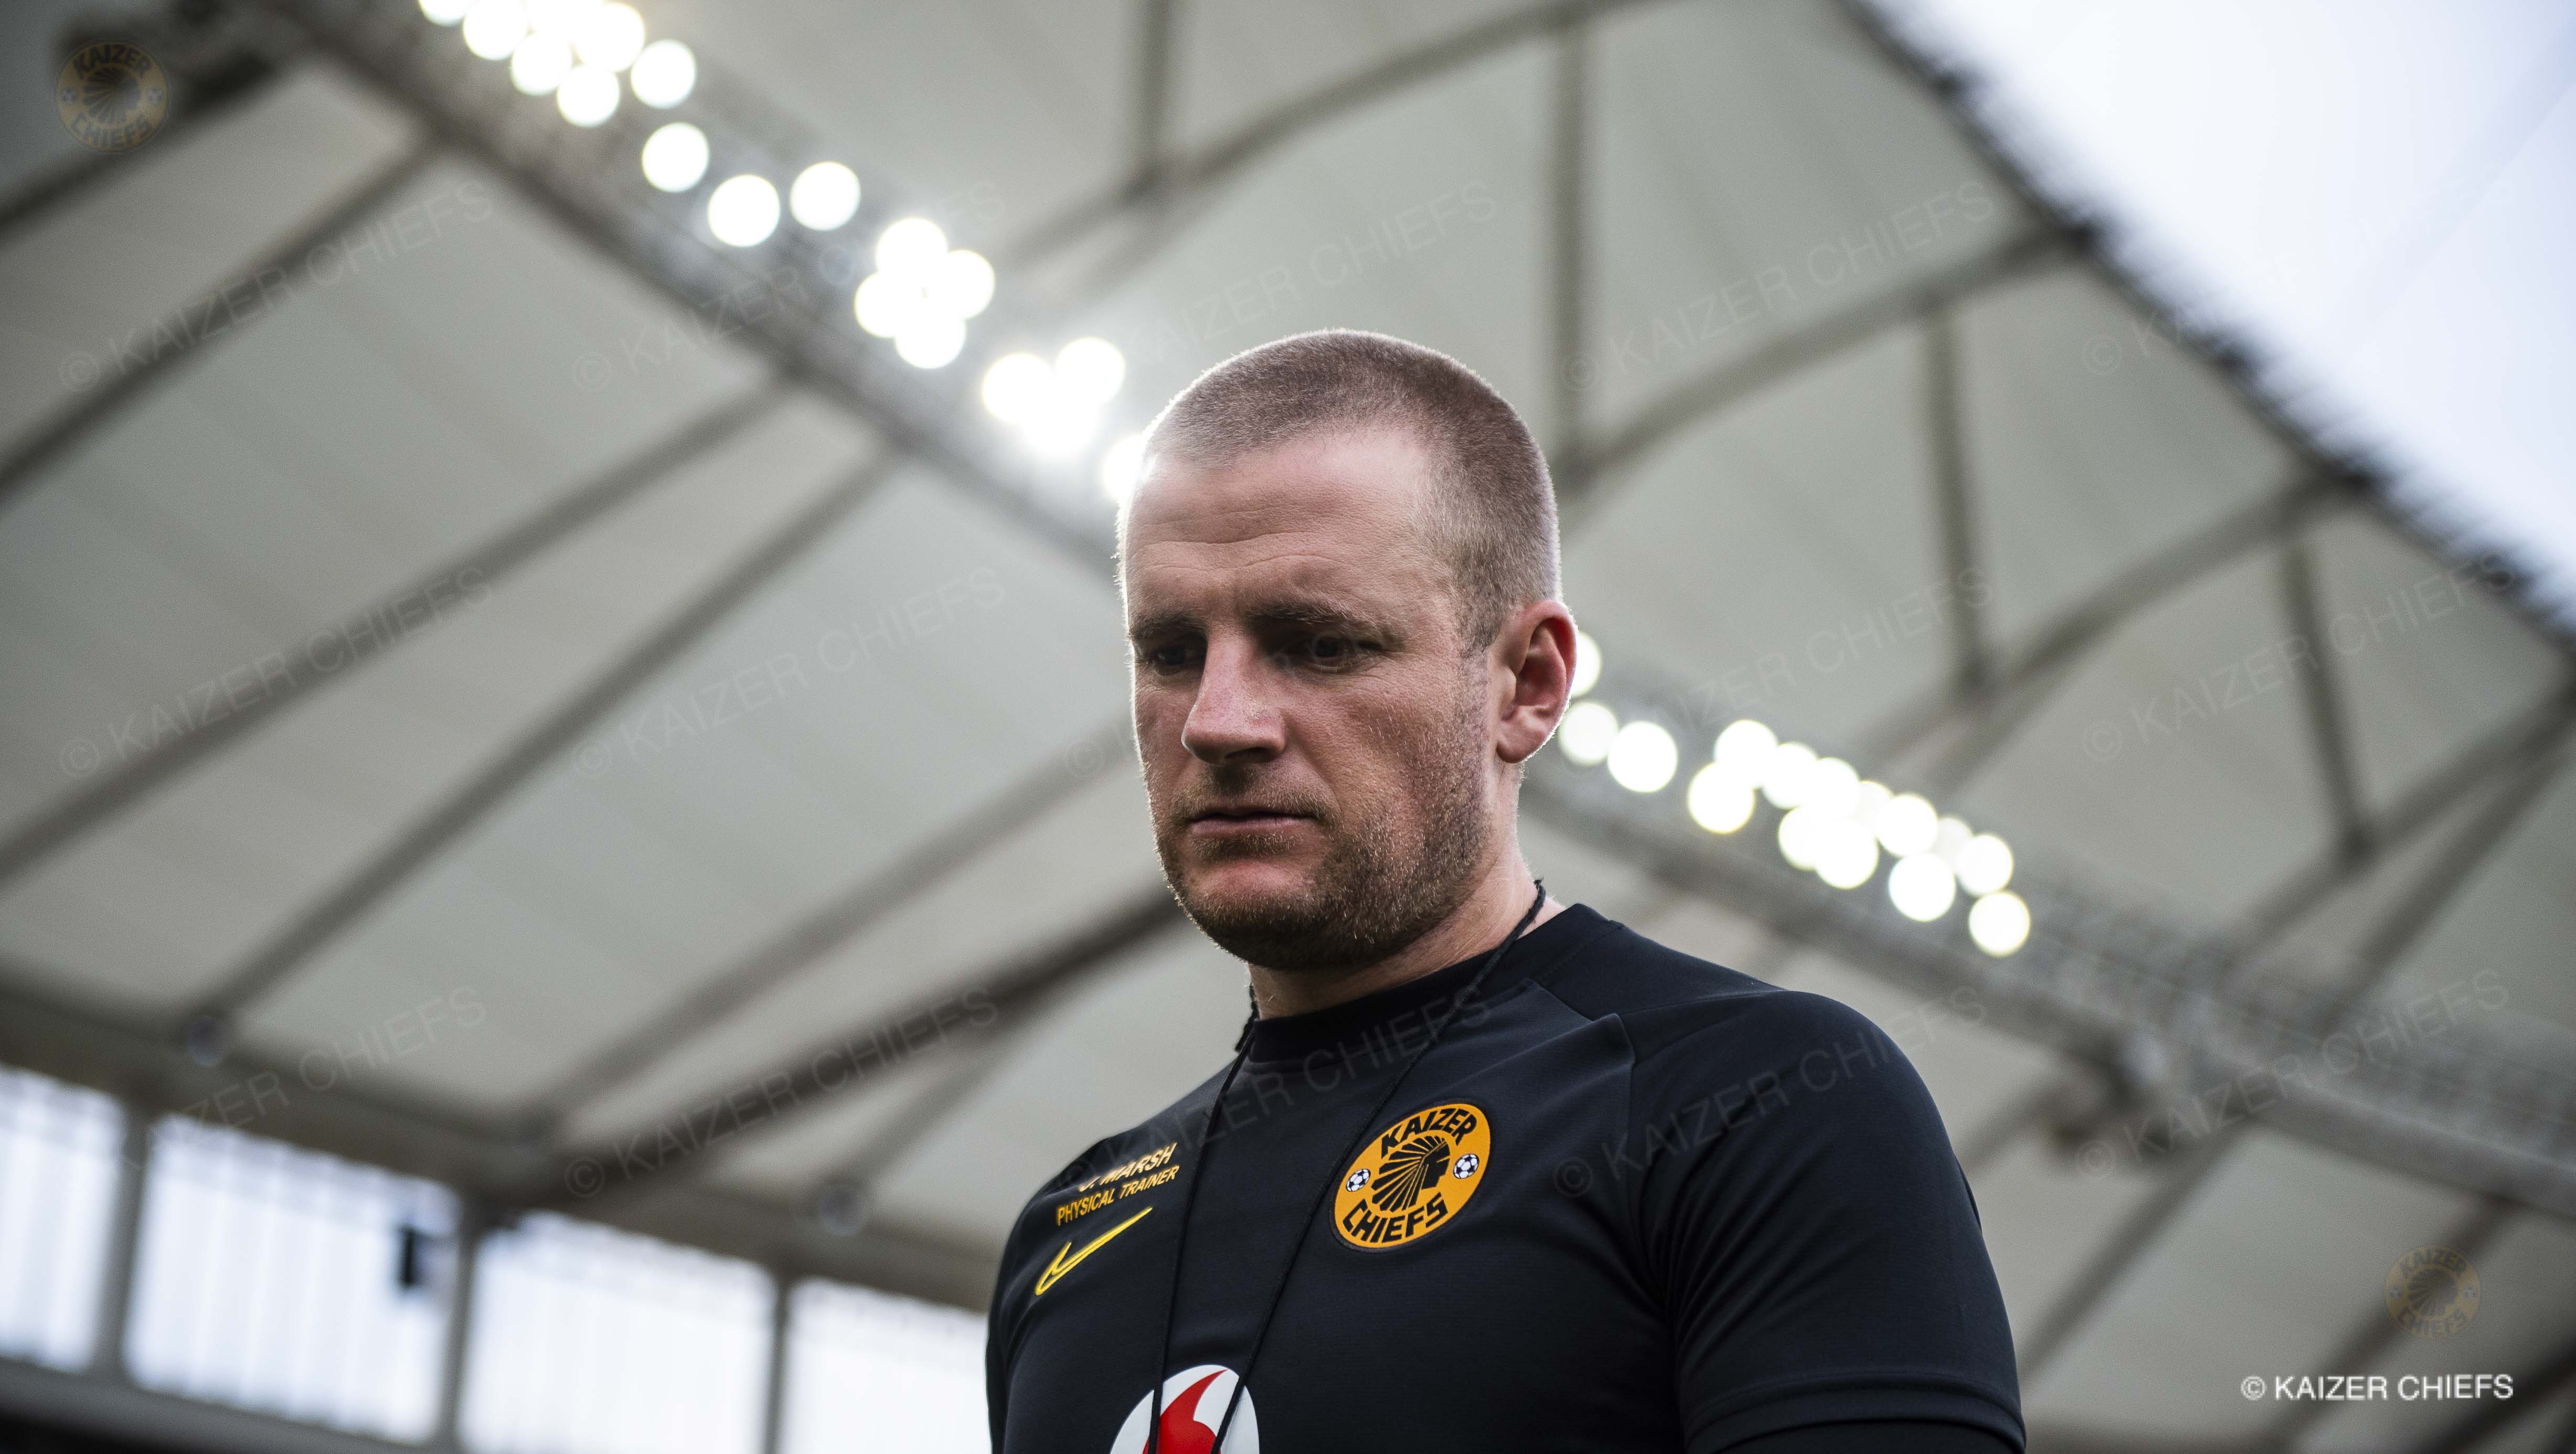 Healthy routine is key for Chiefs' Marsh - Kaizer Chiefs